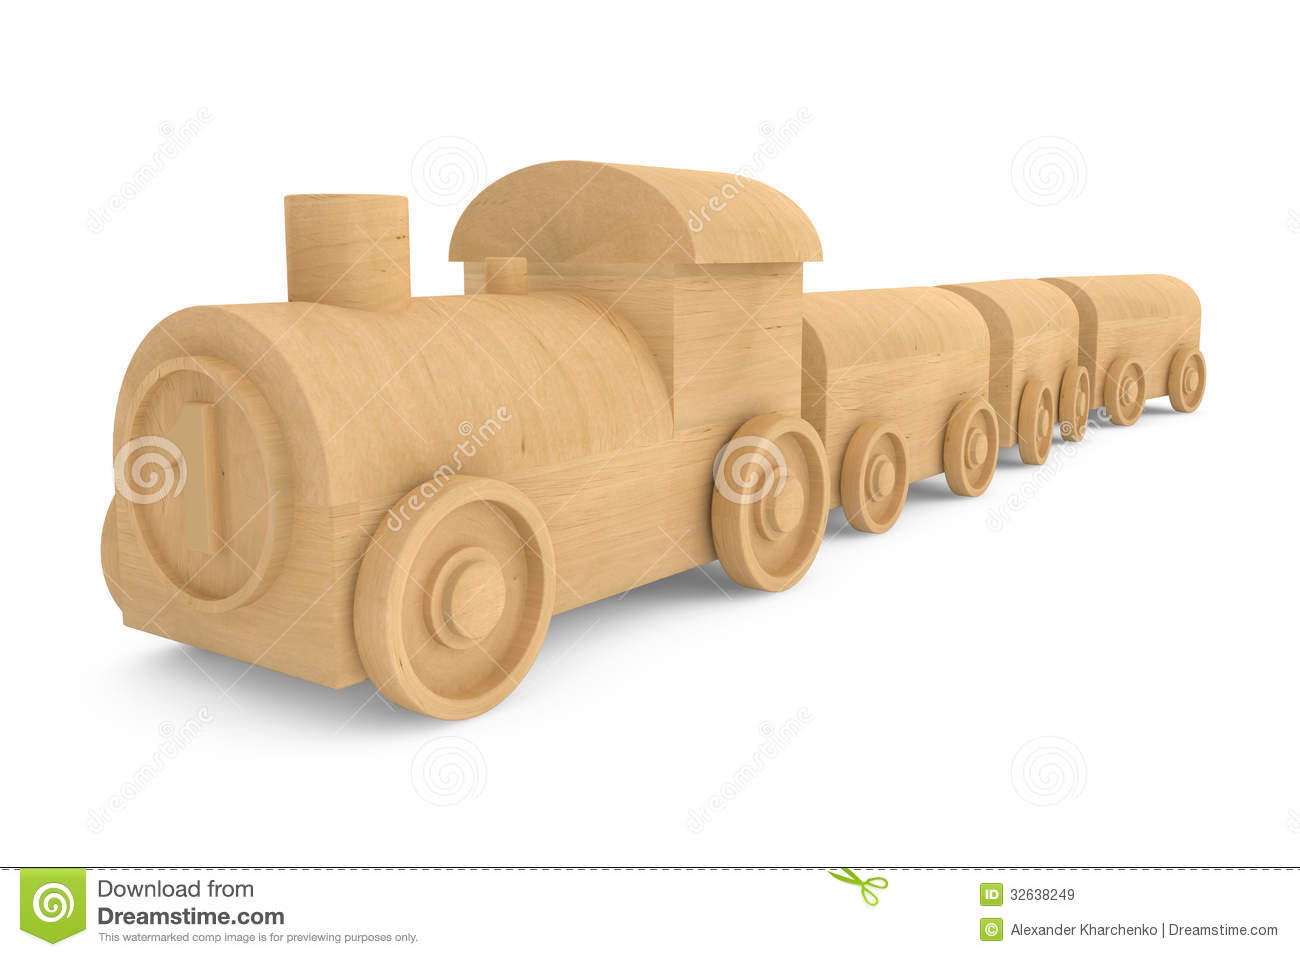 Royalty Free Stock Images: Children toy wooden train